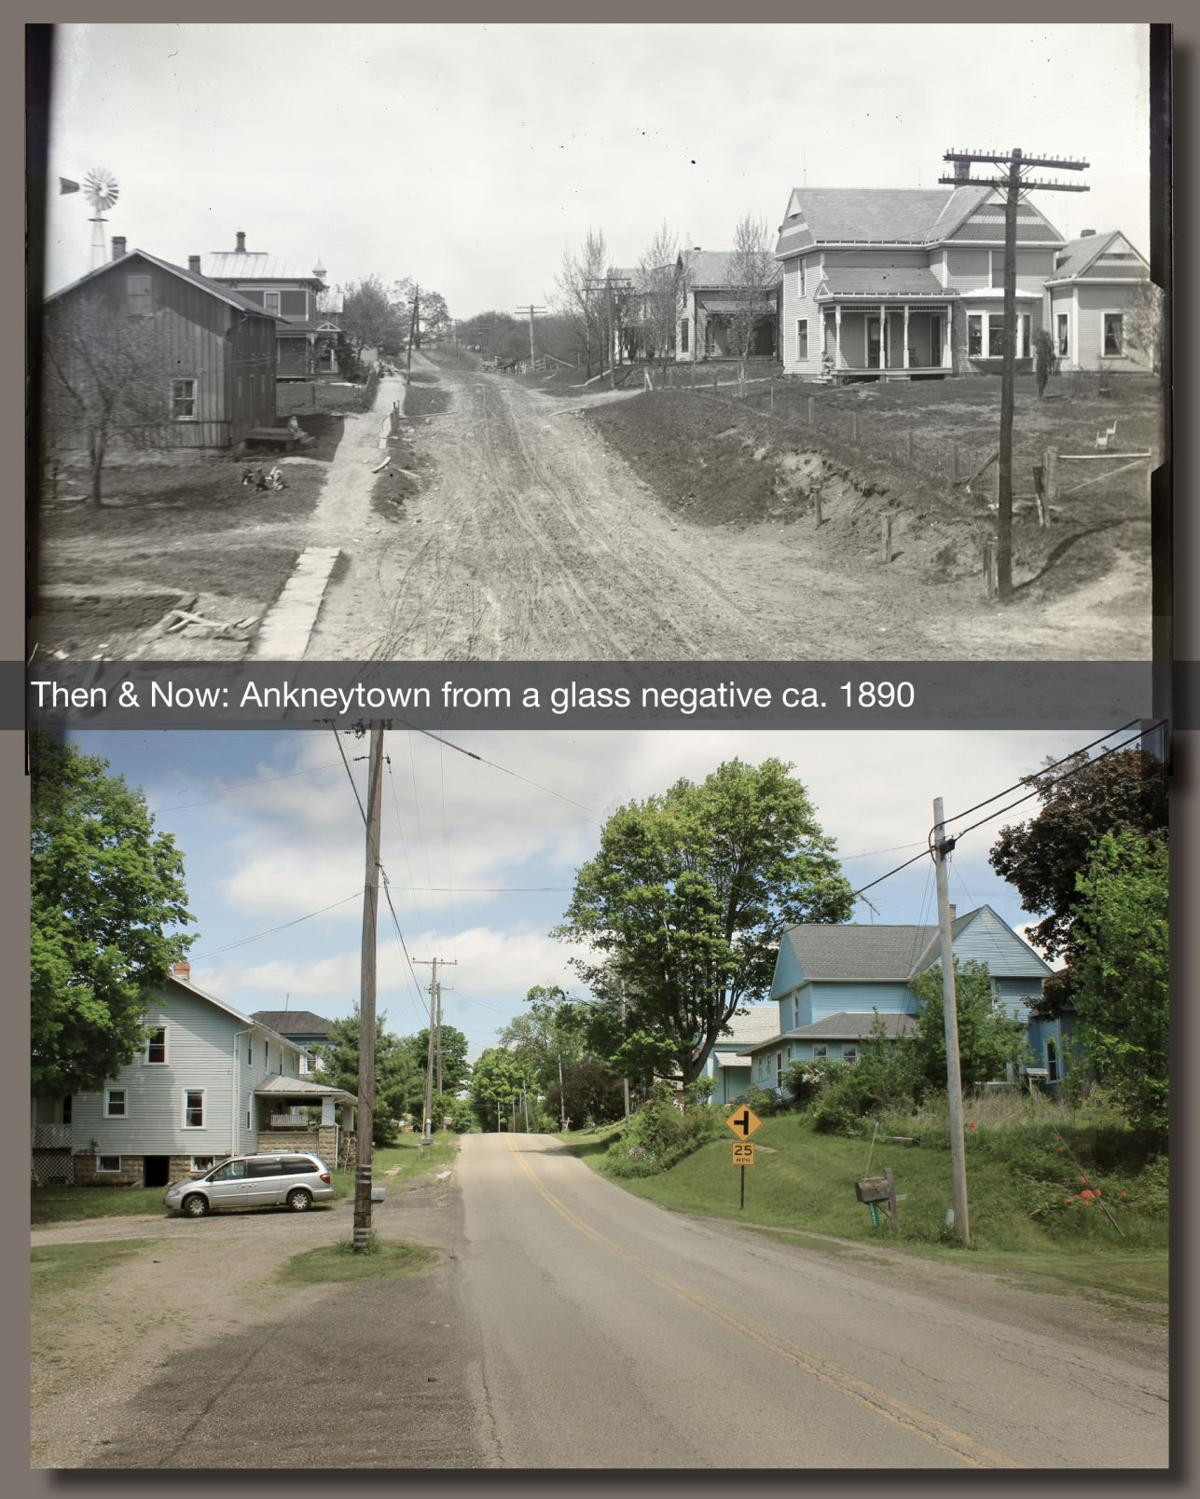 Then & Now: Ankneytown in the 1890s